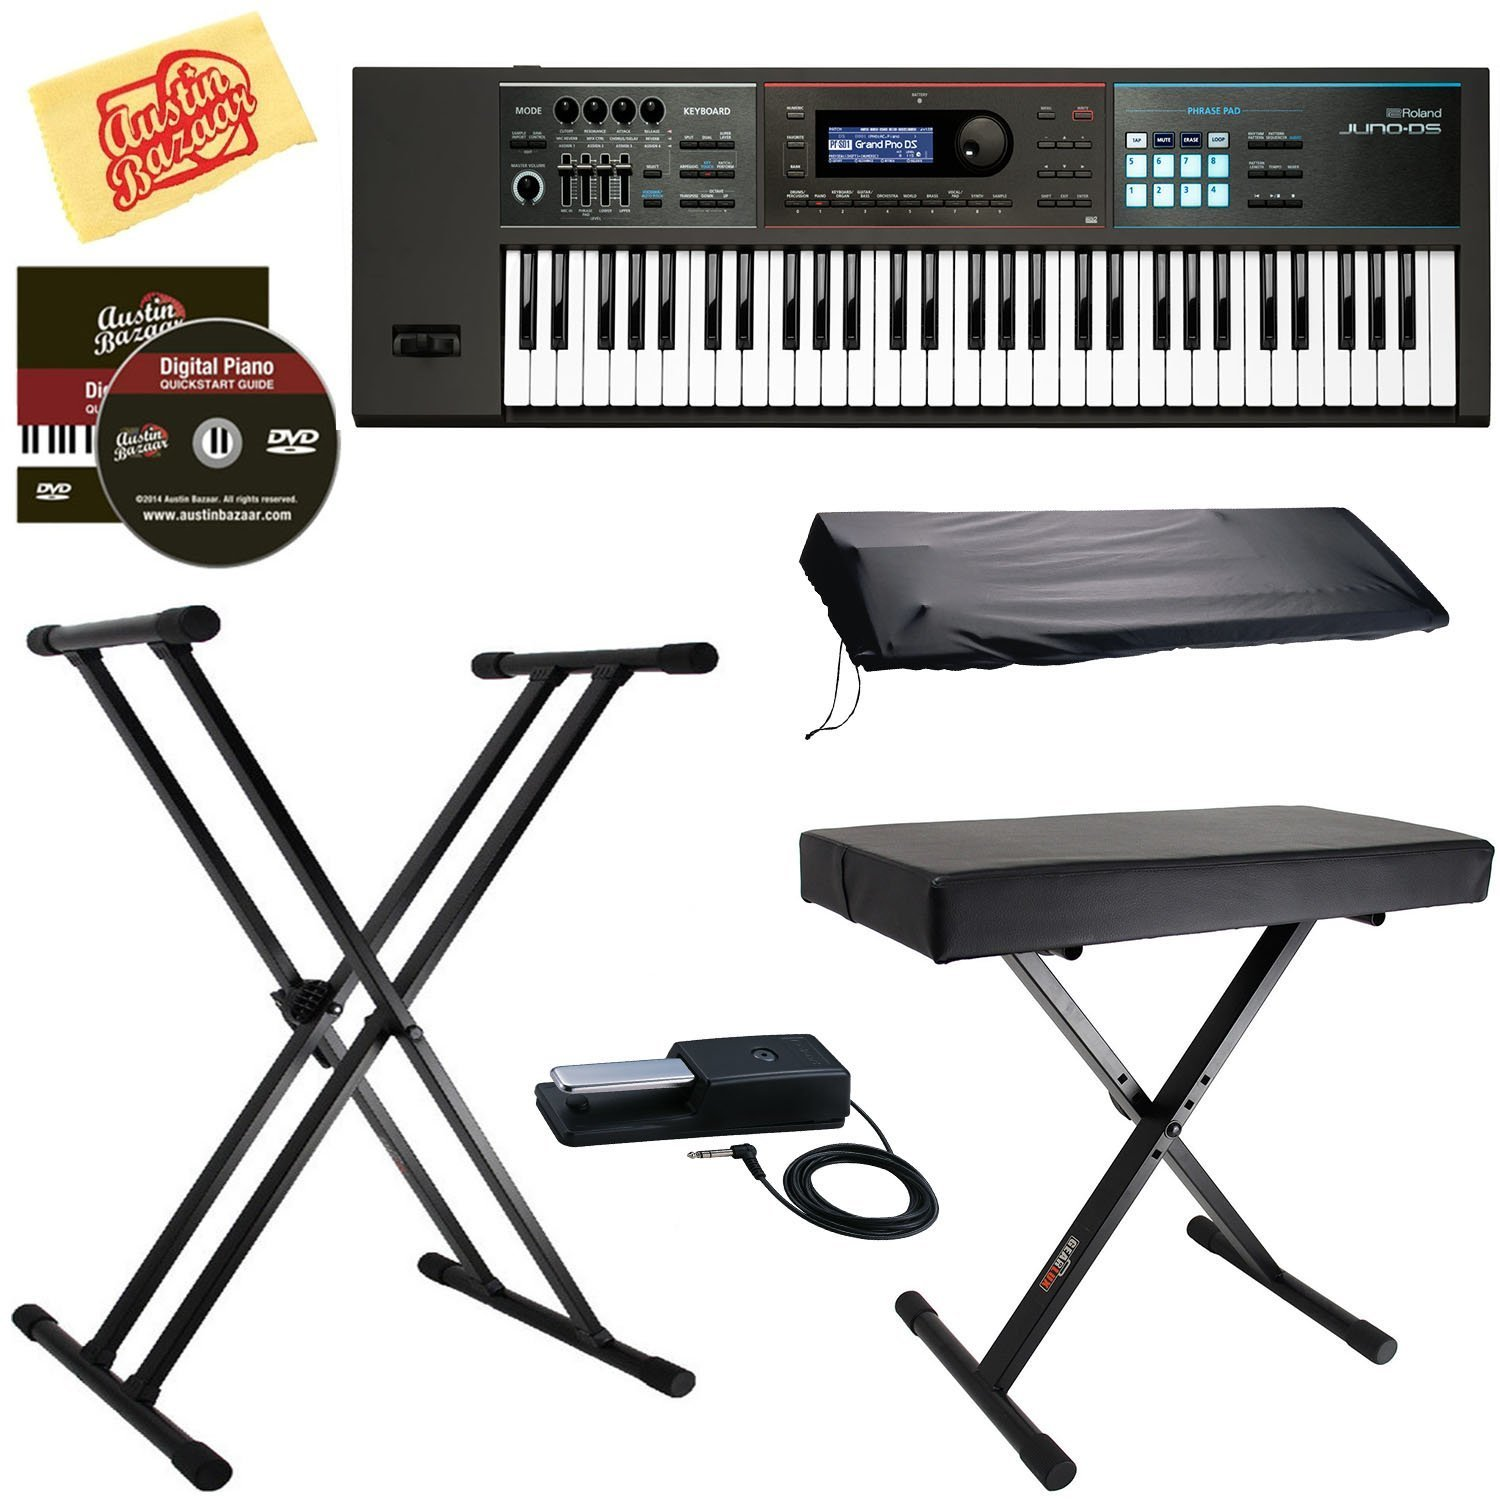 Roland JUNO-DS61 Synthesizer Bundle with Roland DP-10